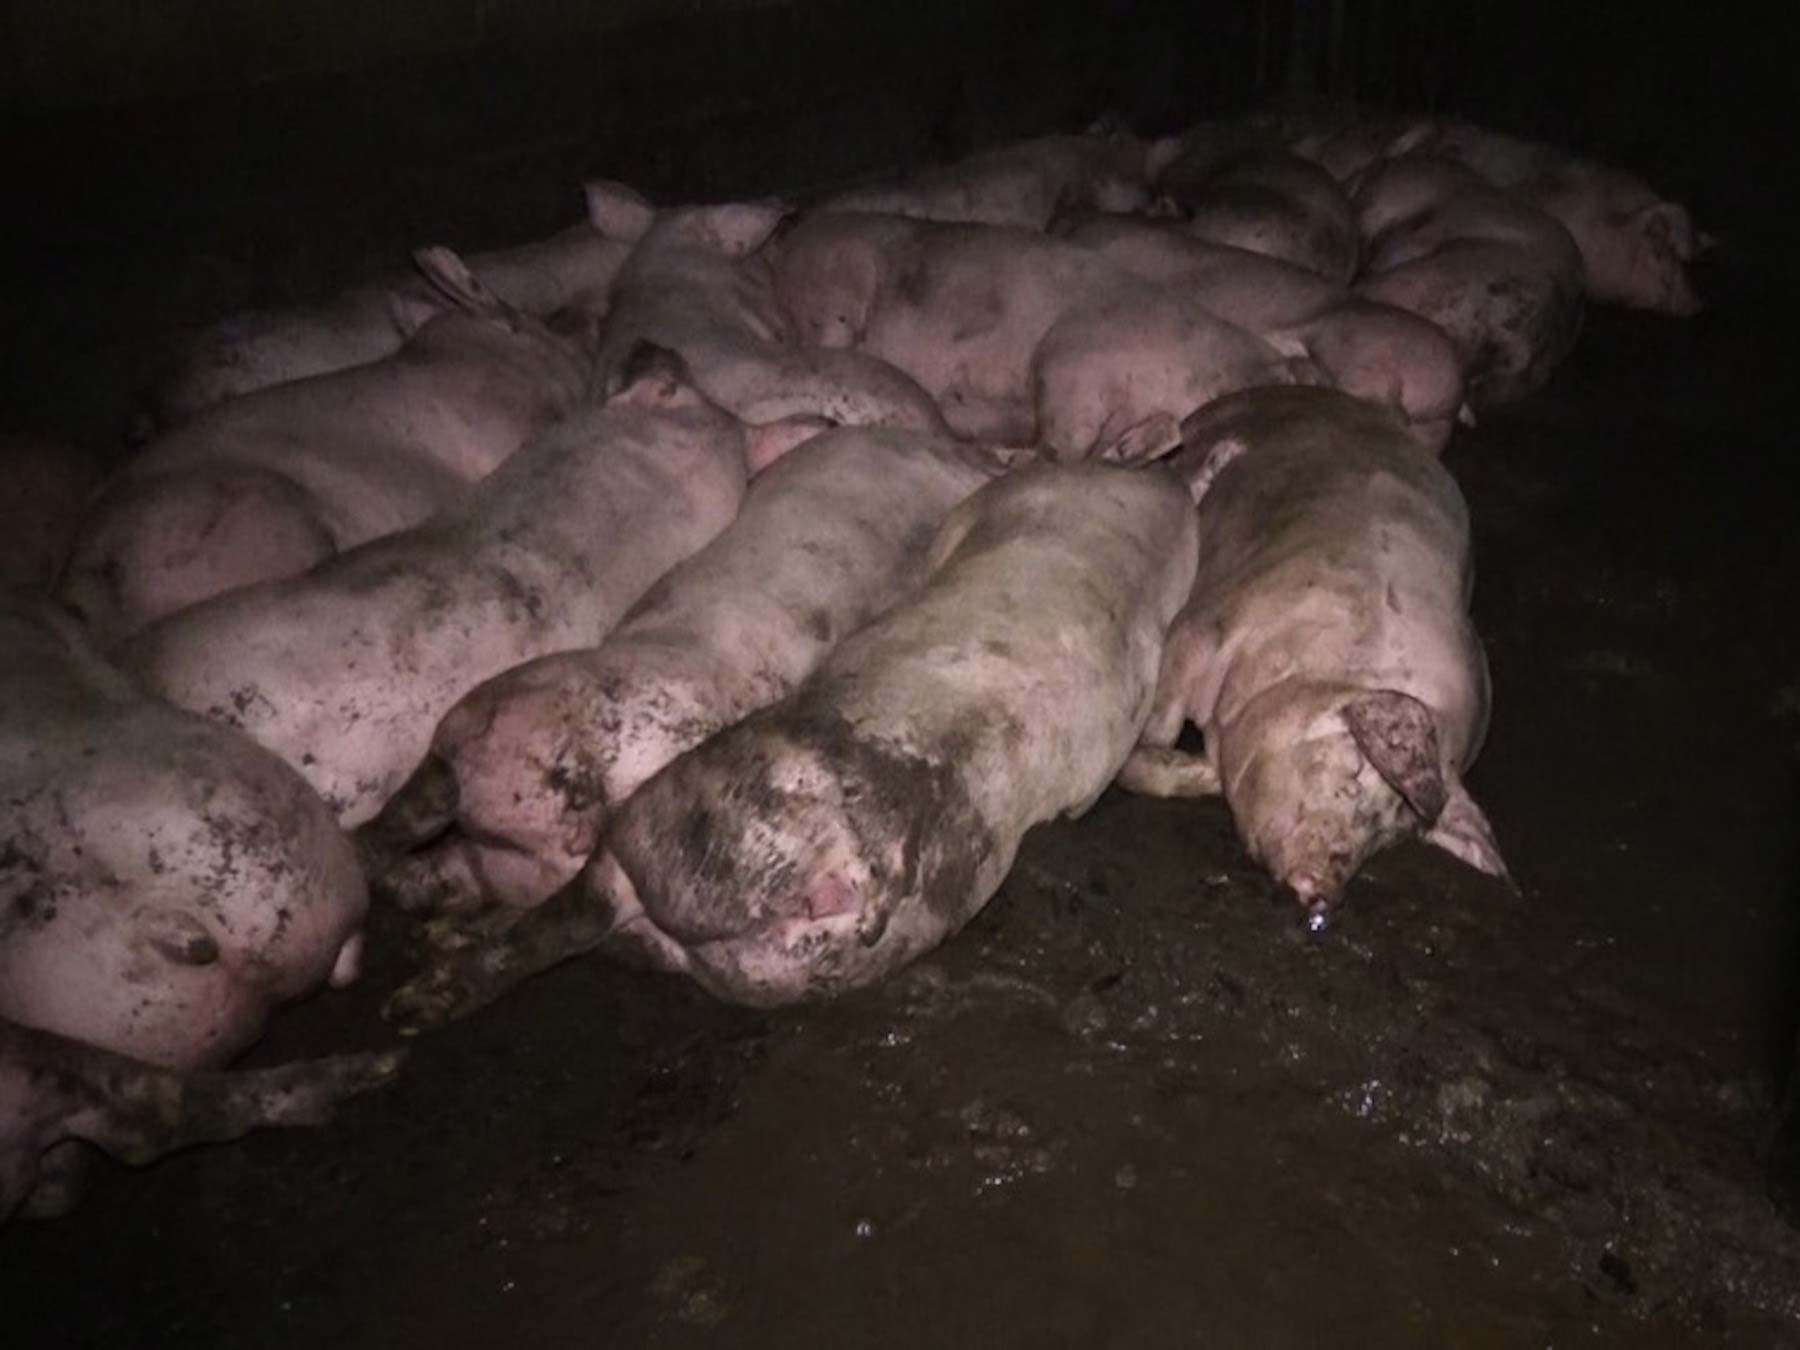 Pigs living in their own waste